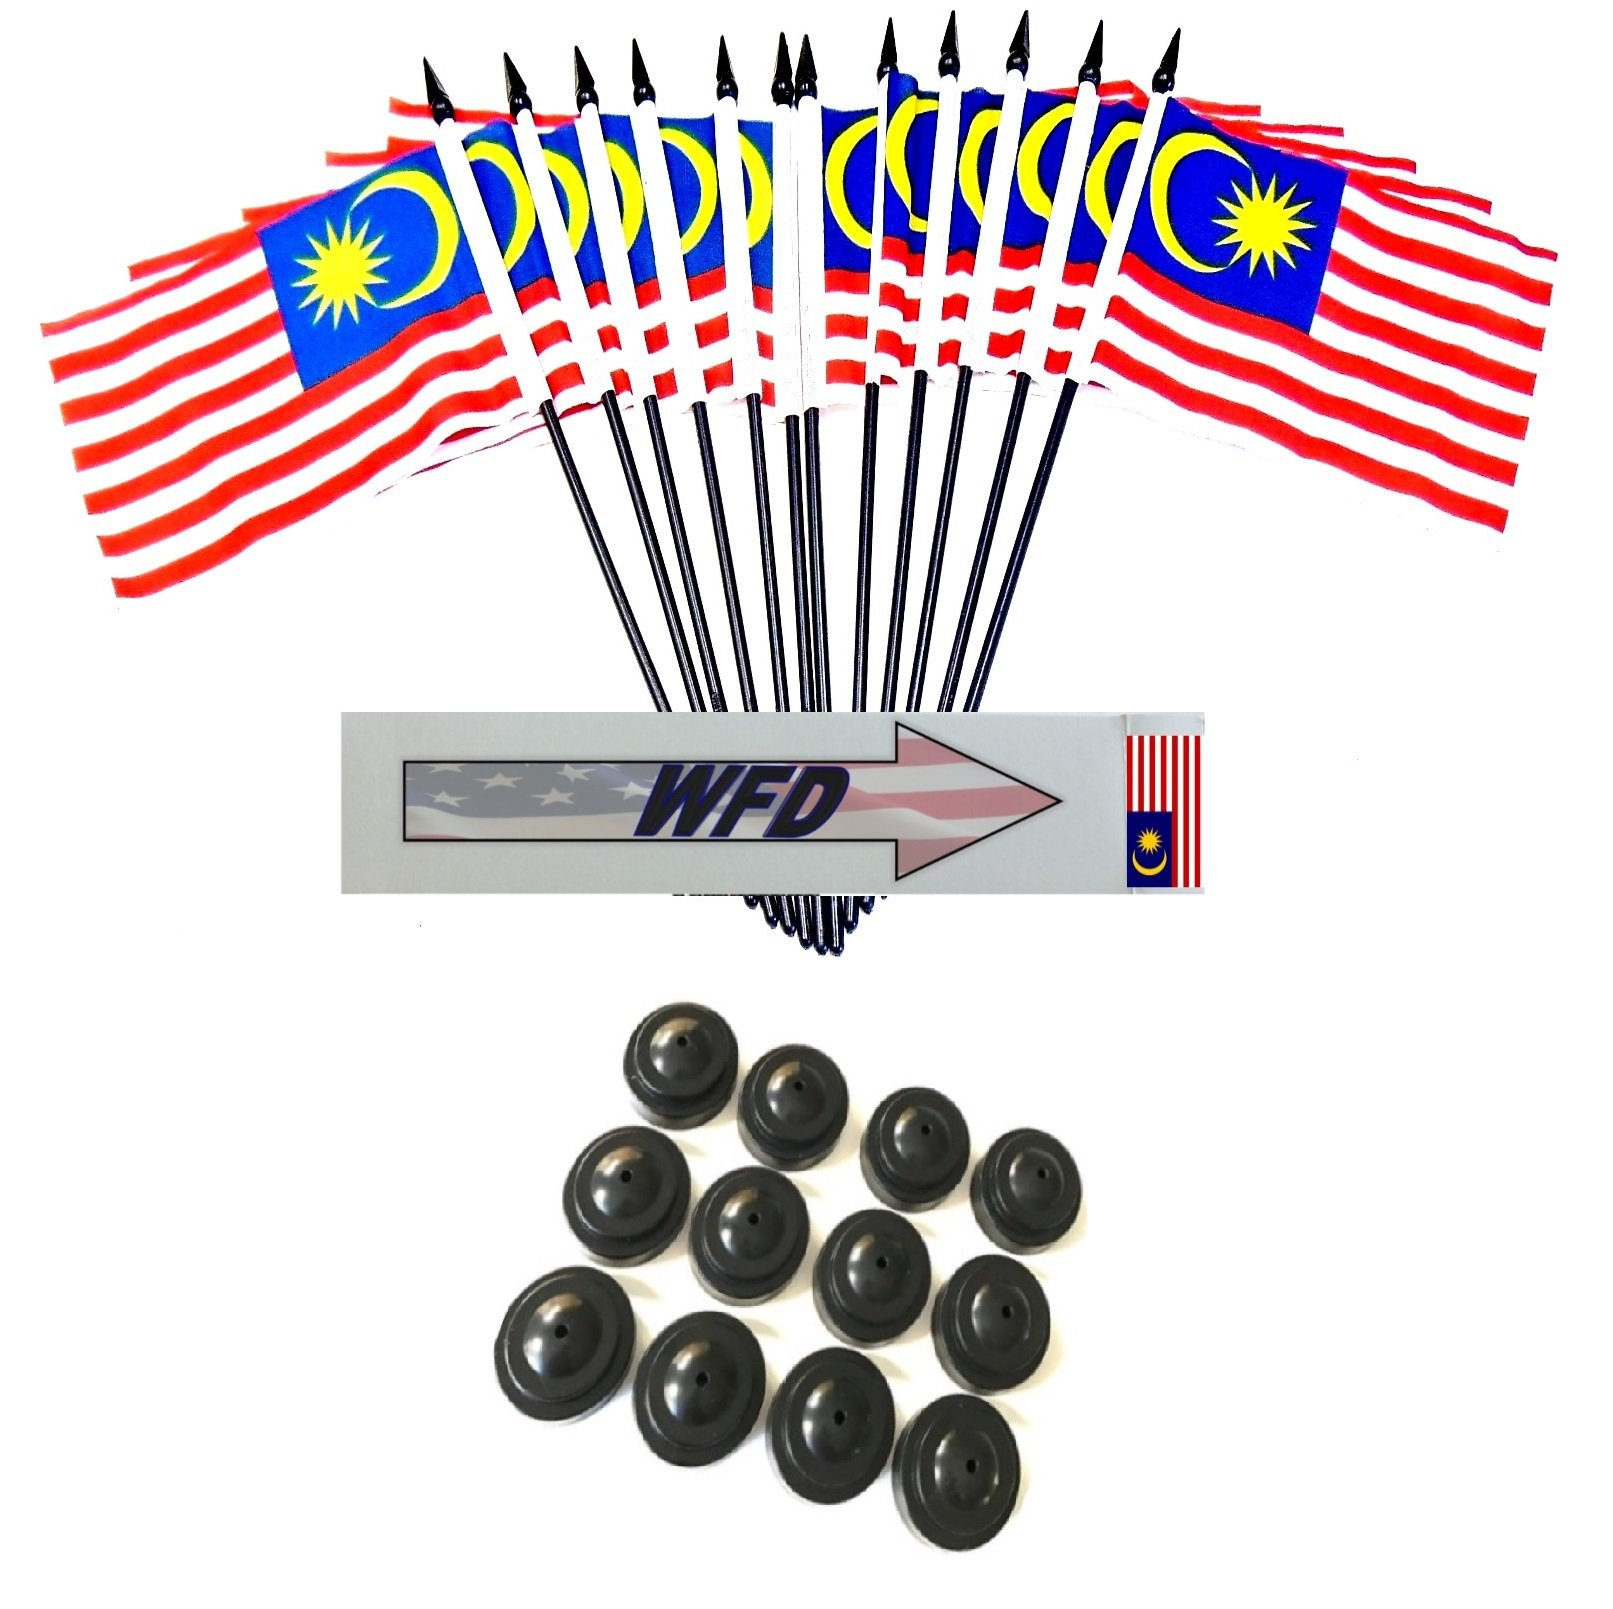 Pack of 12 4''x6'' Malaysia Polyester Miniature Office Desk & Little Table Flags, 1 Dozen 4''x 6'' Malaysian Small Mini Handheld Waving Stick Flags with 12 Flag Bases (Flags with Stands)